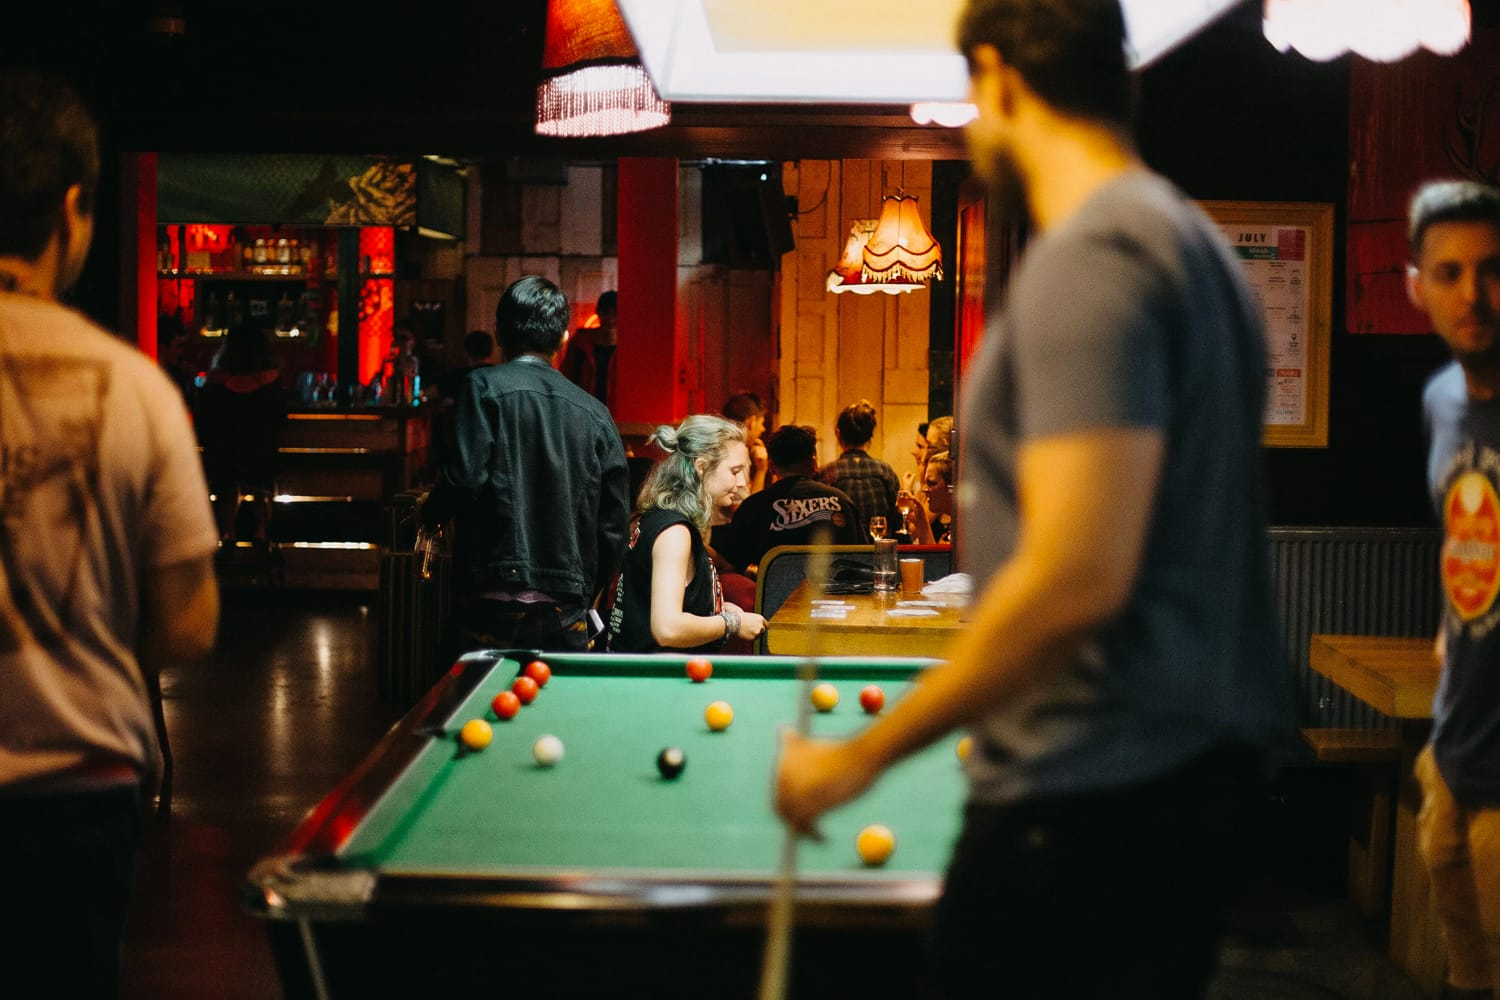 Pool table at Clink78 Hostel in London